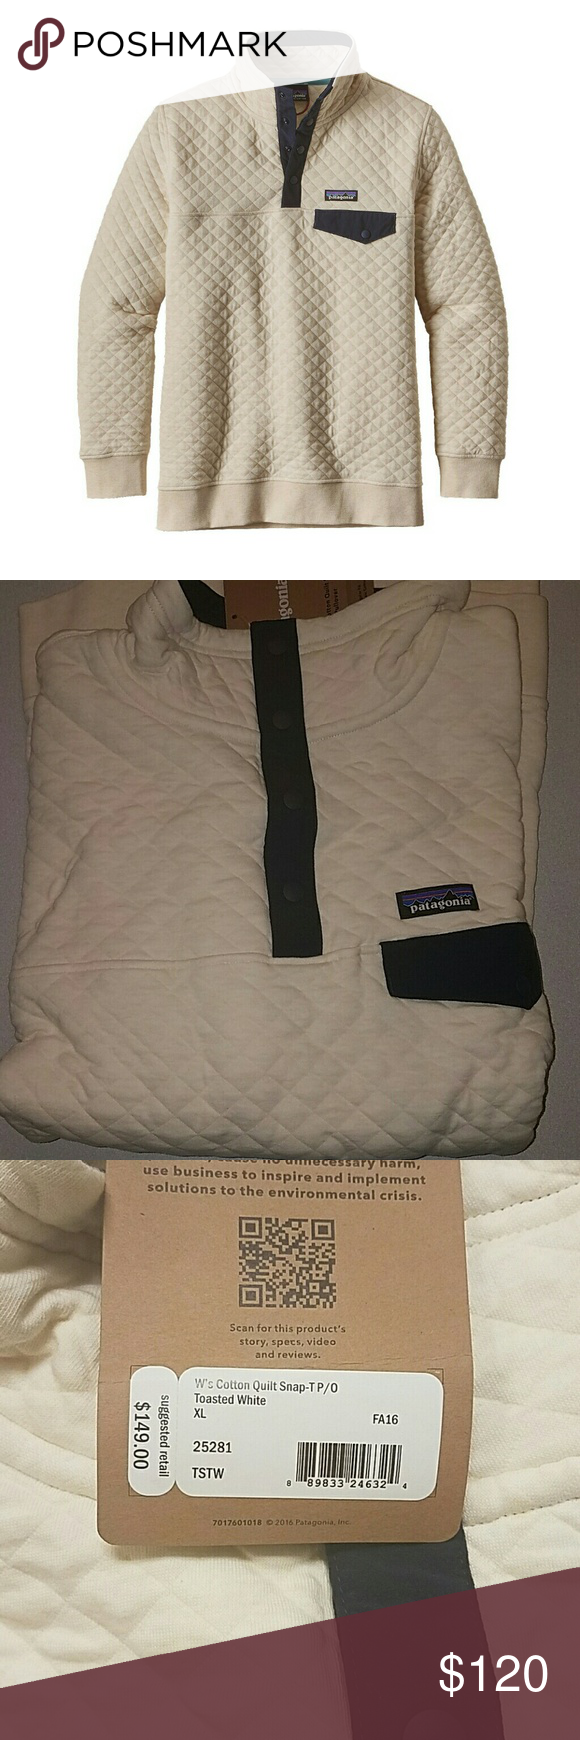 Patagonia Cotton Quilt Snap T Pullover Nwt Toasted White